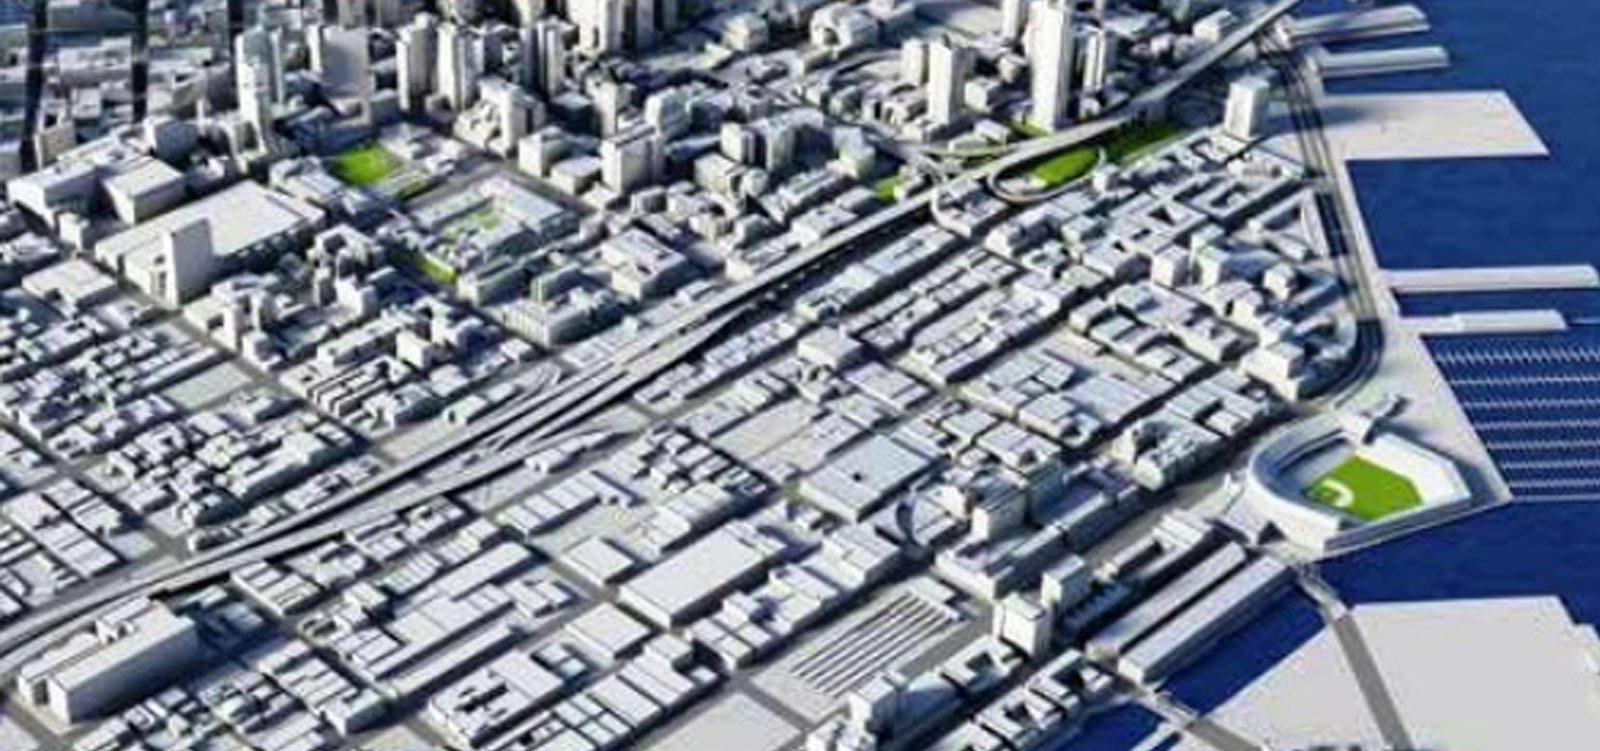 SoMa: Current Zoning and Building Heights